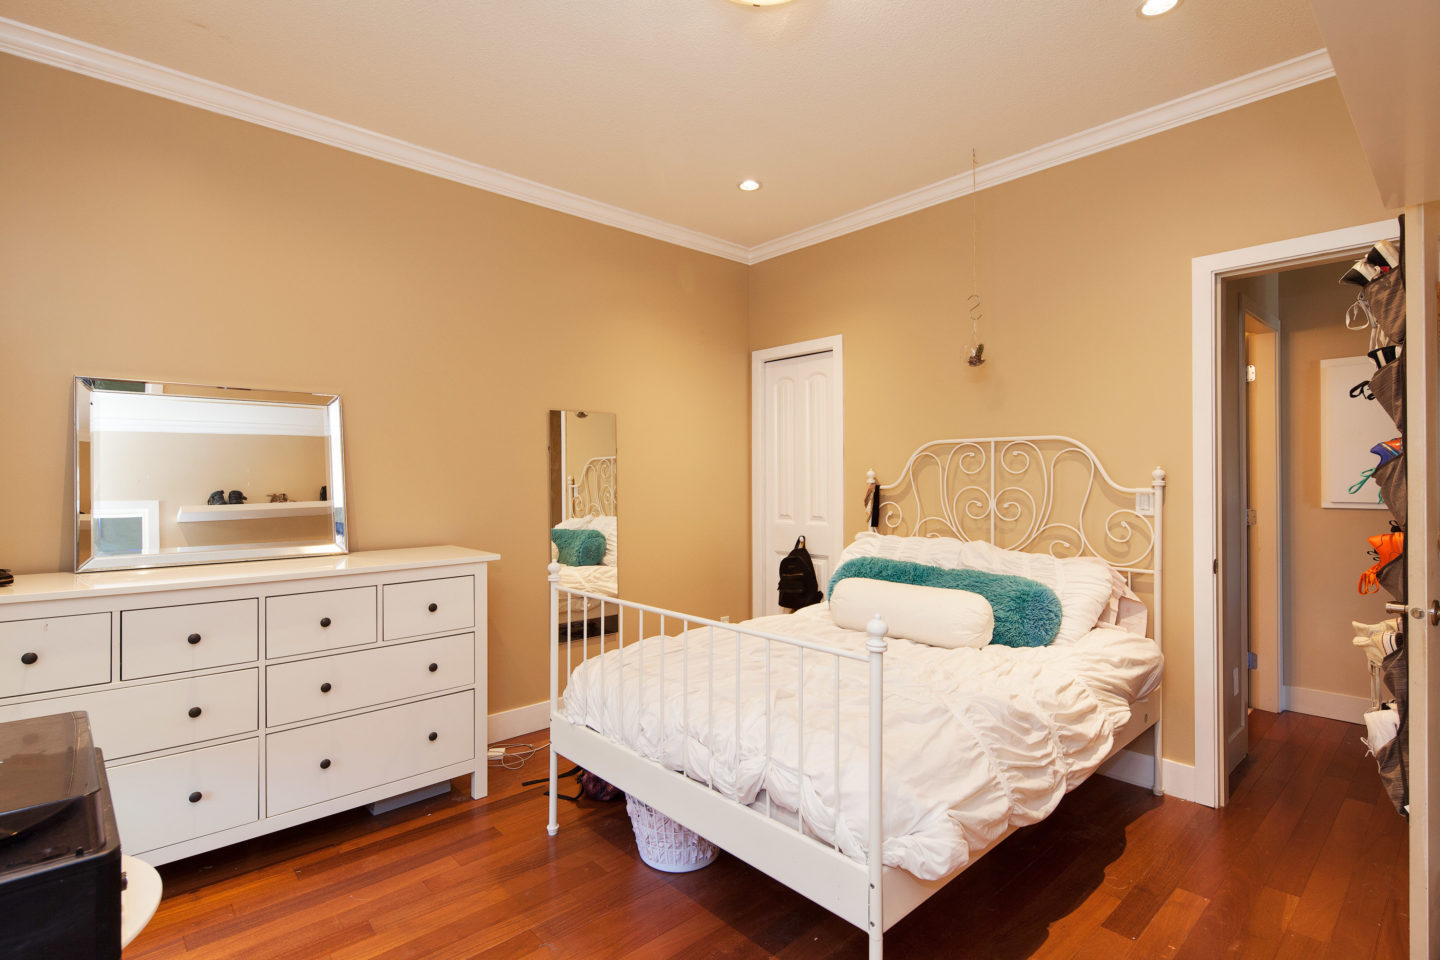 Cheap bedroom sets for sale near me king size bedroom set for Cheap bedroom sets near me